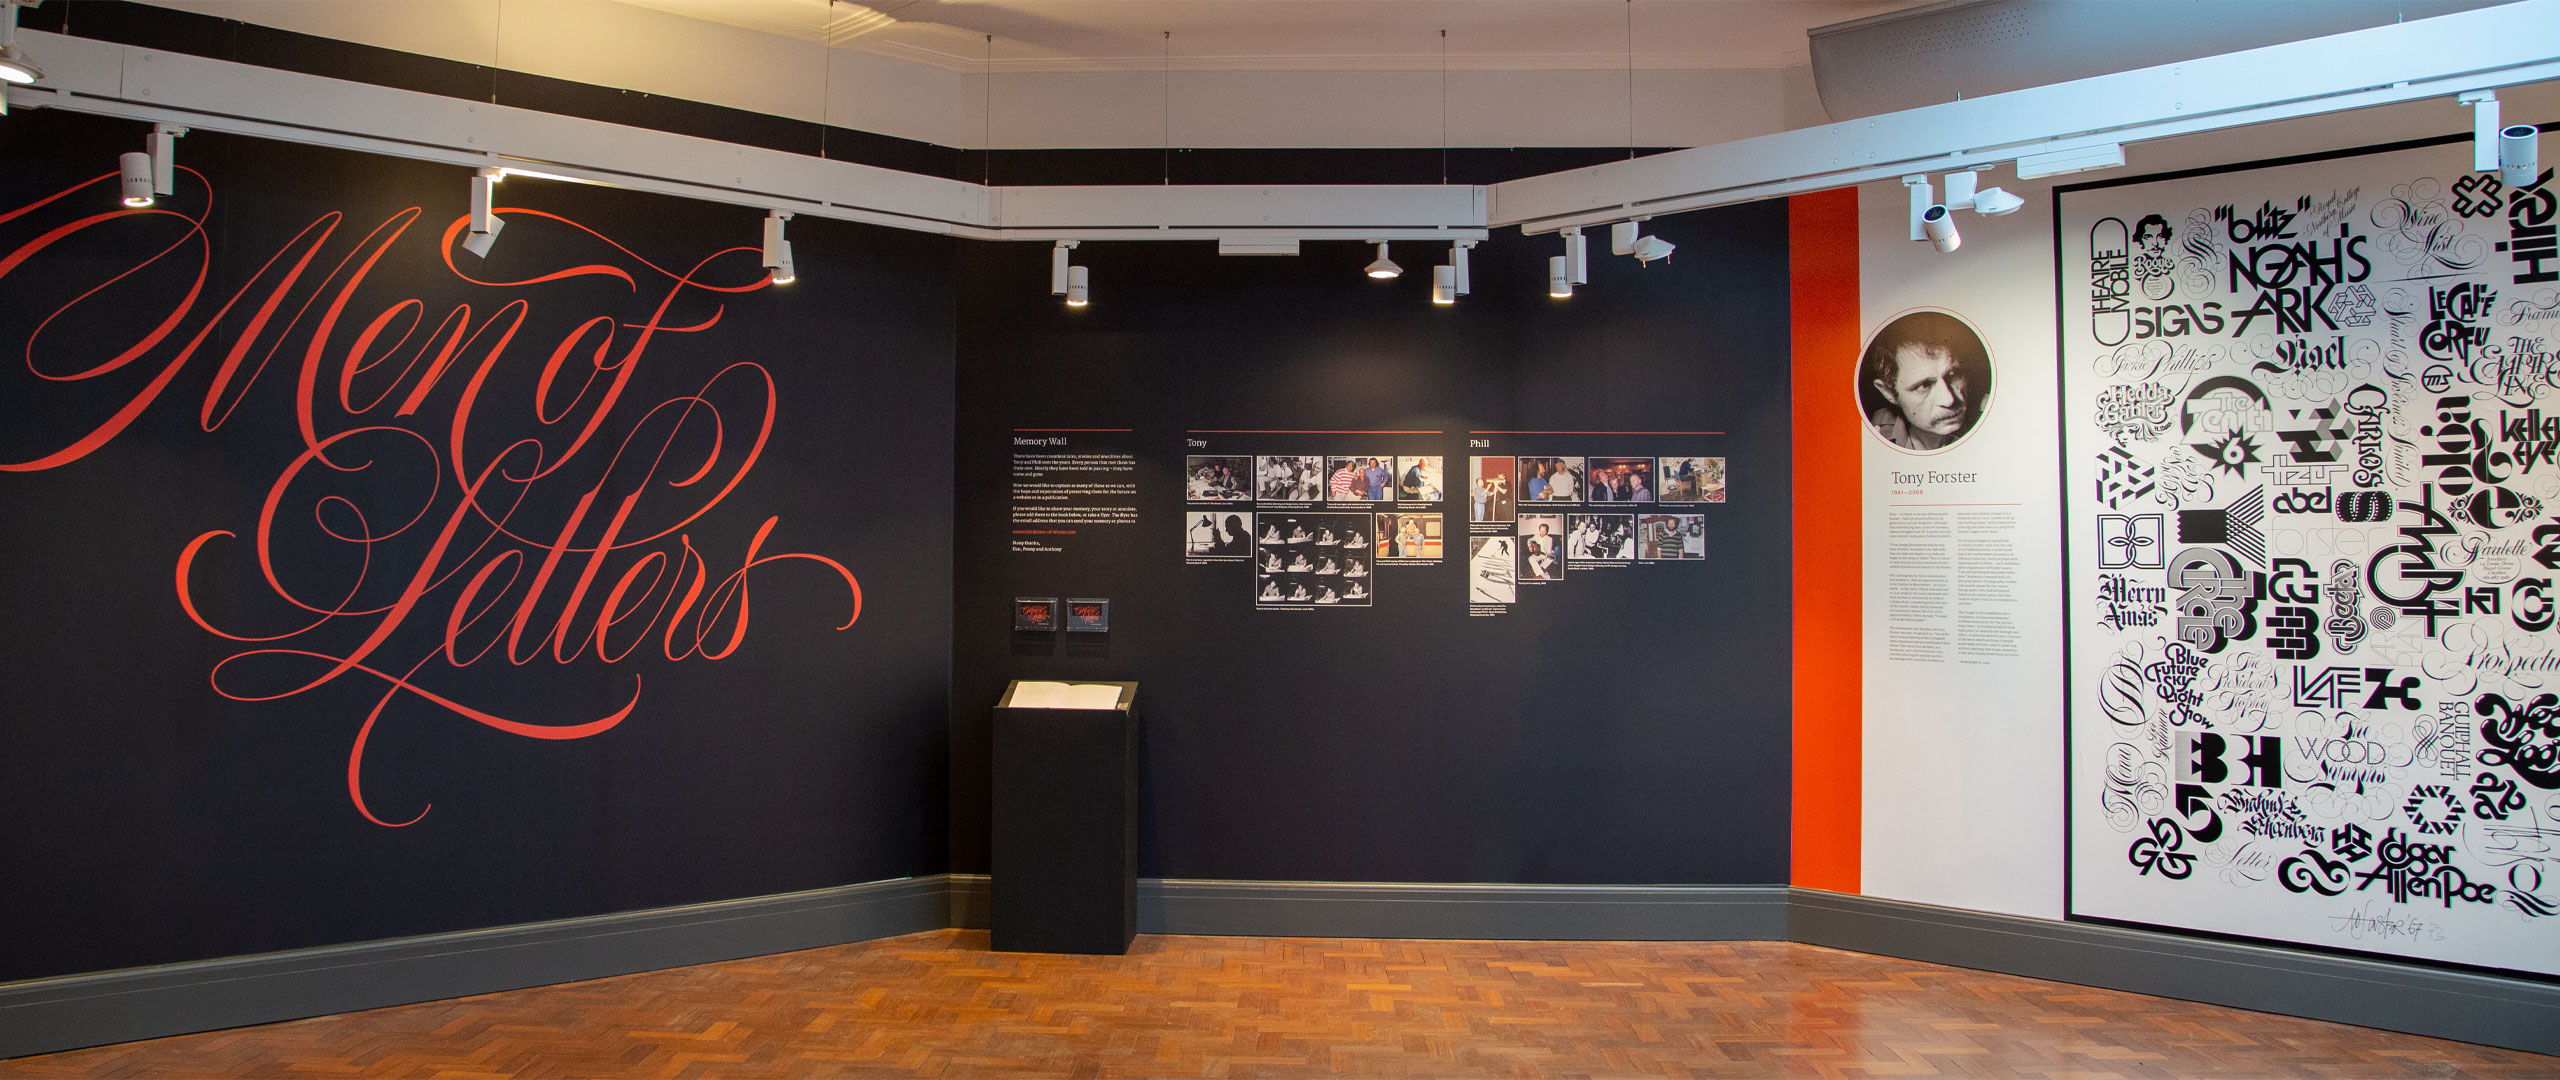 Men-of-Letters-exhibition-Introduction wall